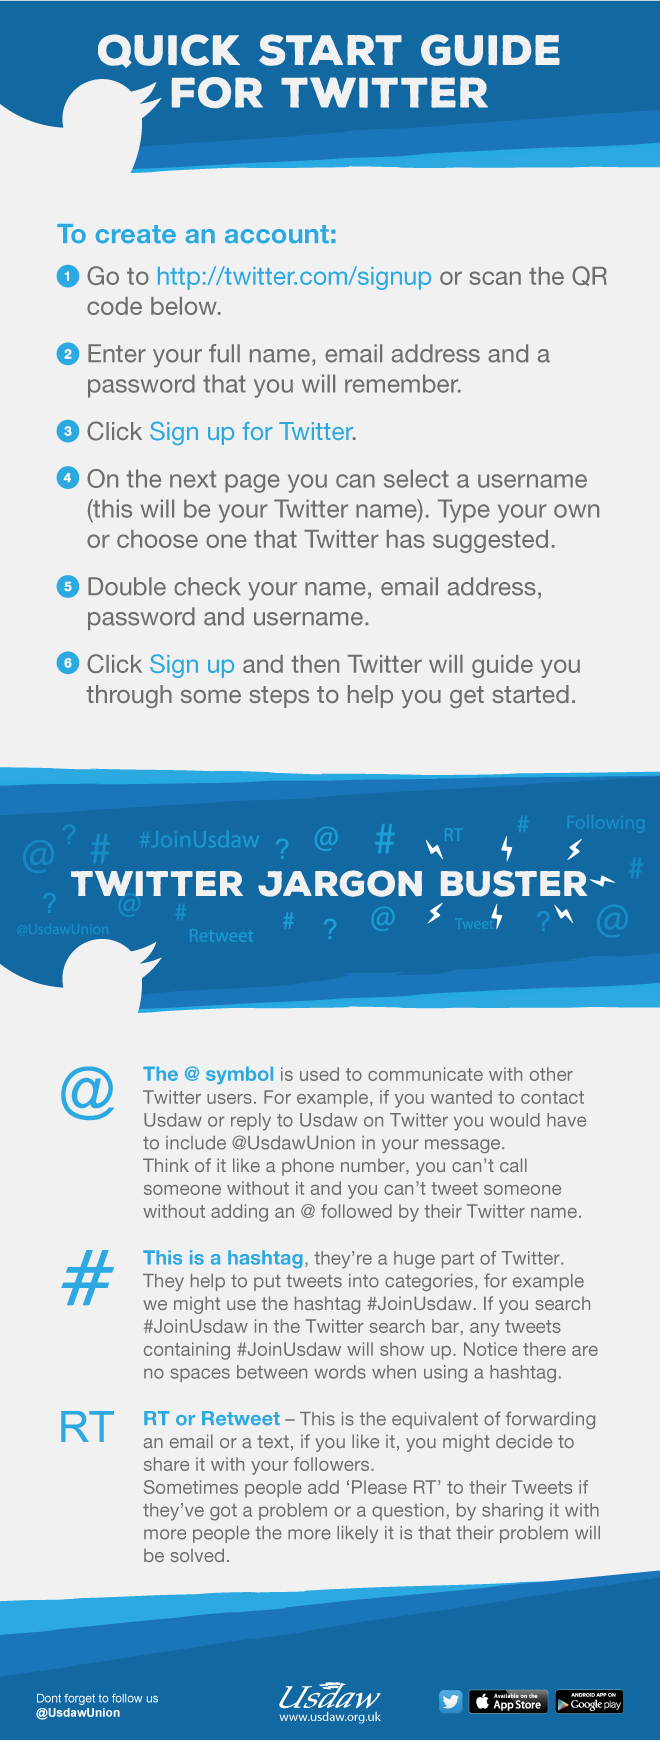 Twitter Guide Image